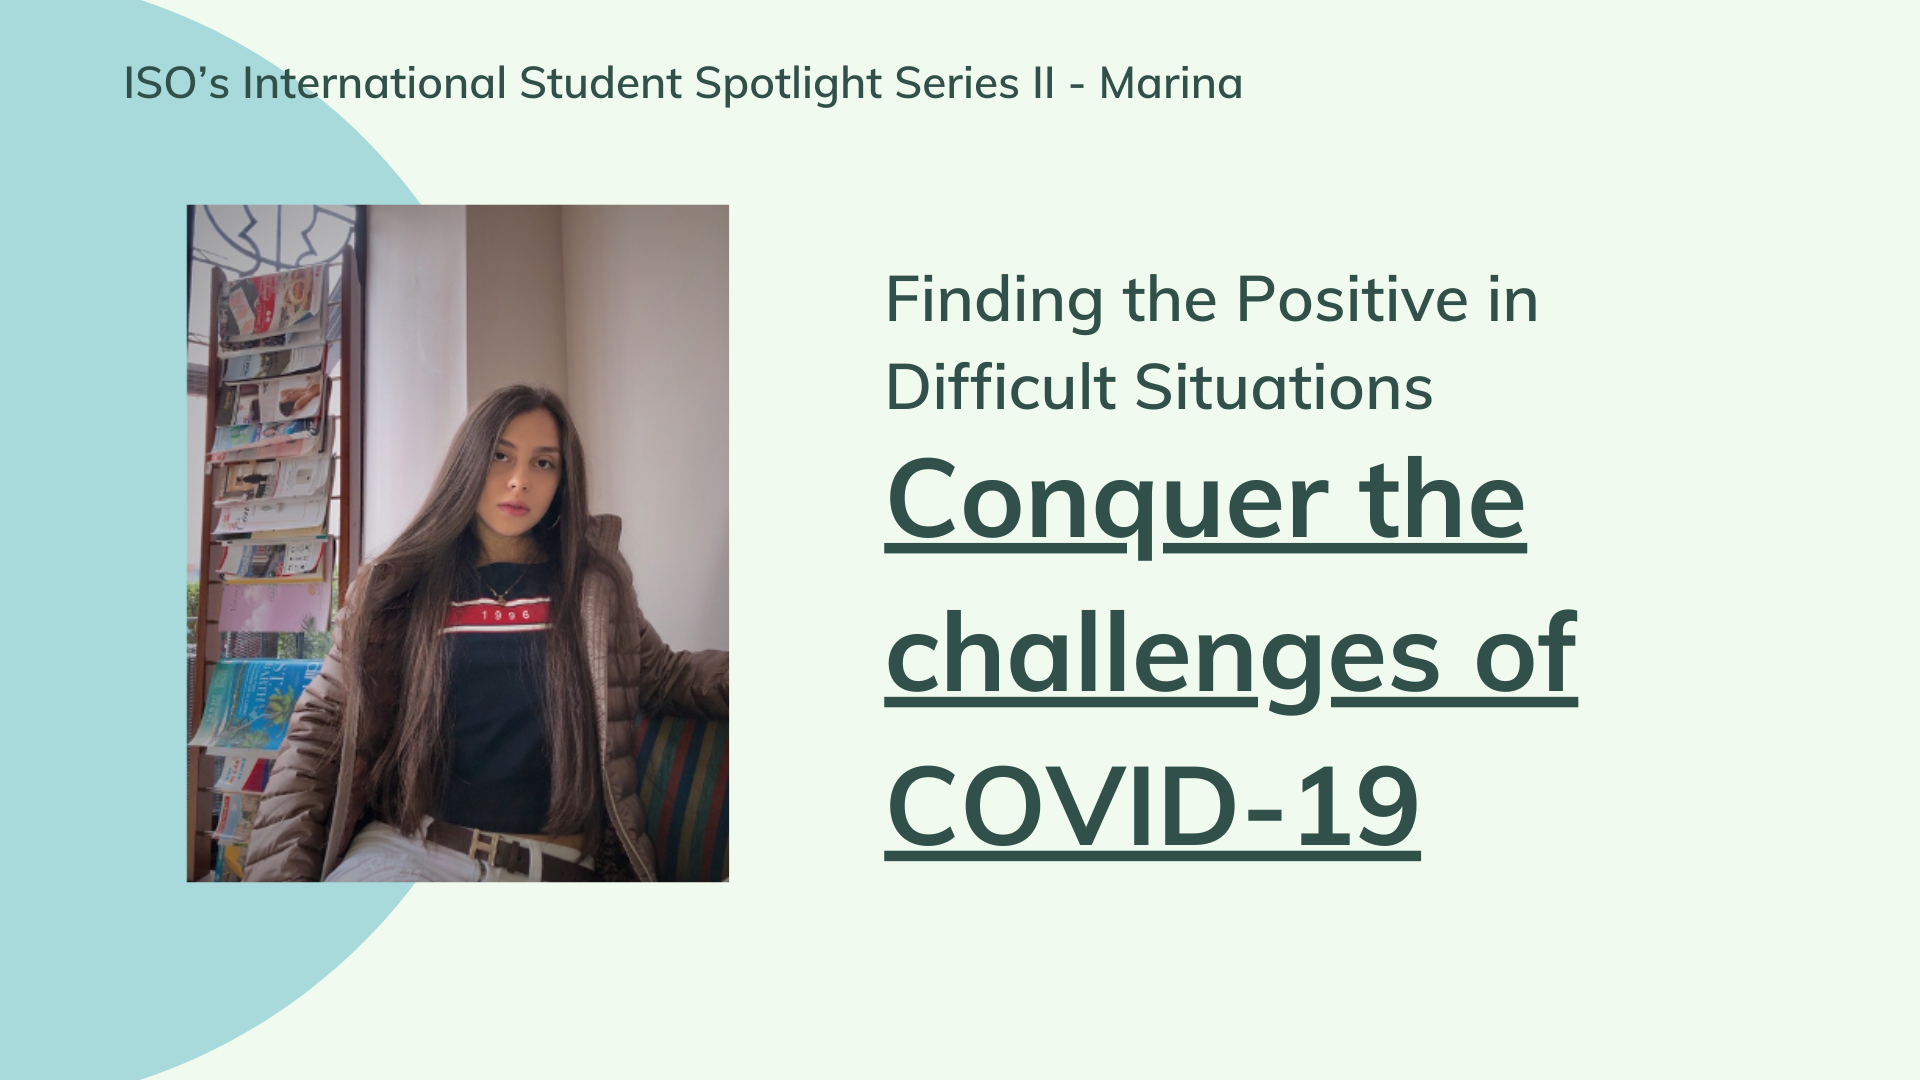 Finding the Positive in Difficult Situations: International students conquer the challenges of COVID-19